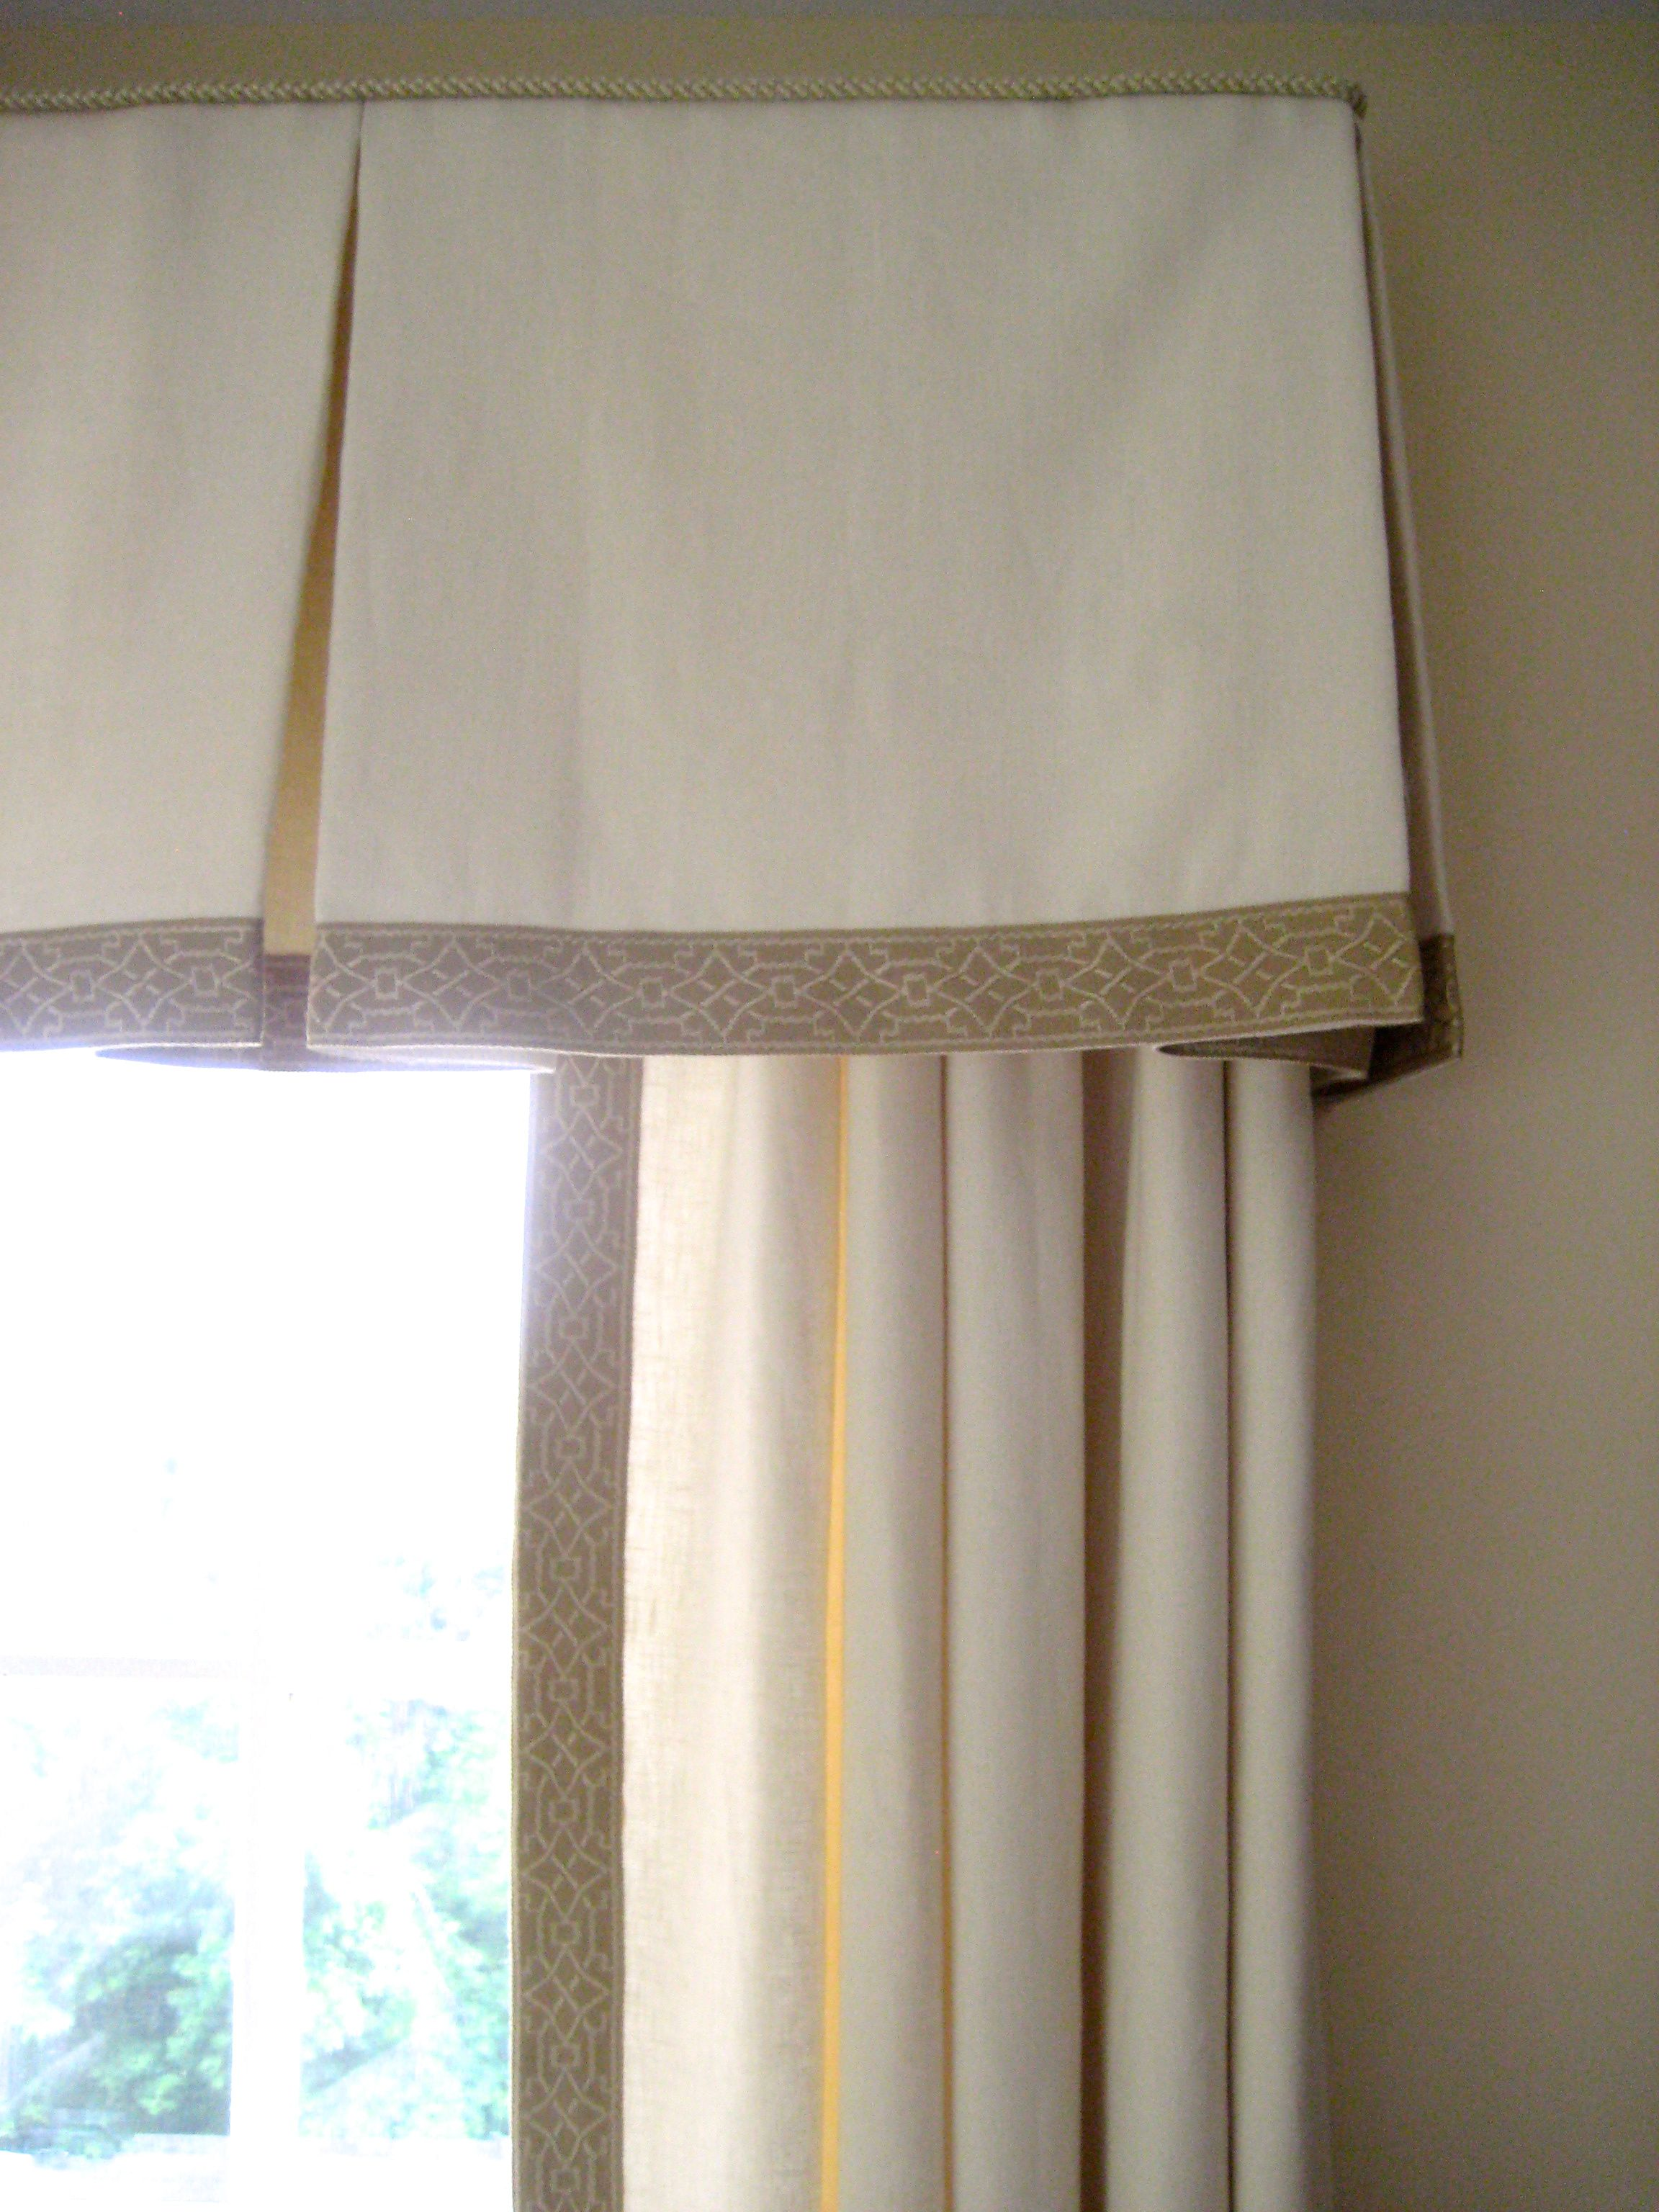 Classic Beige Embroidered Tape Trim On Box Pleated Valance Www Drapery Design Com Drapery Designs Custom Window Coverings Box Pleat Valance